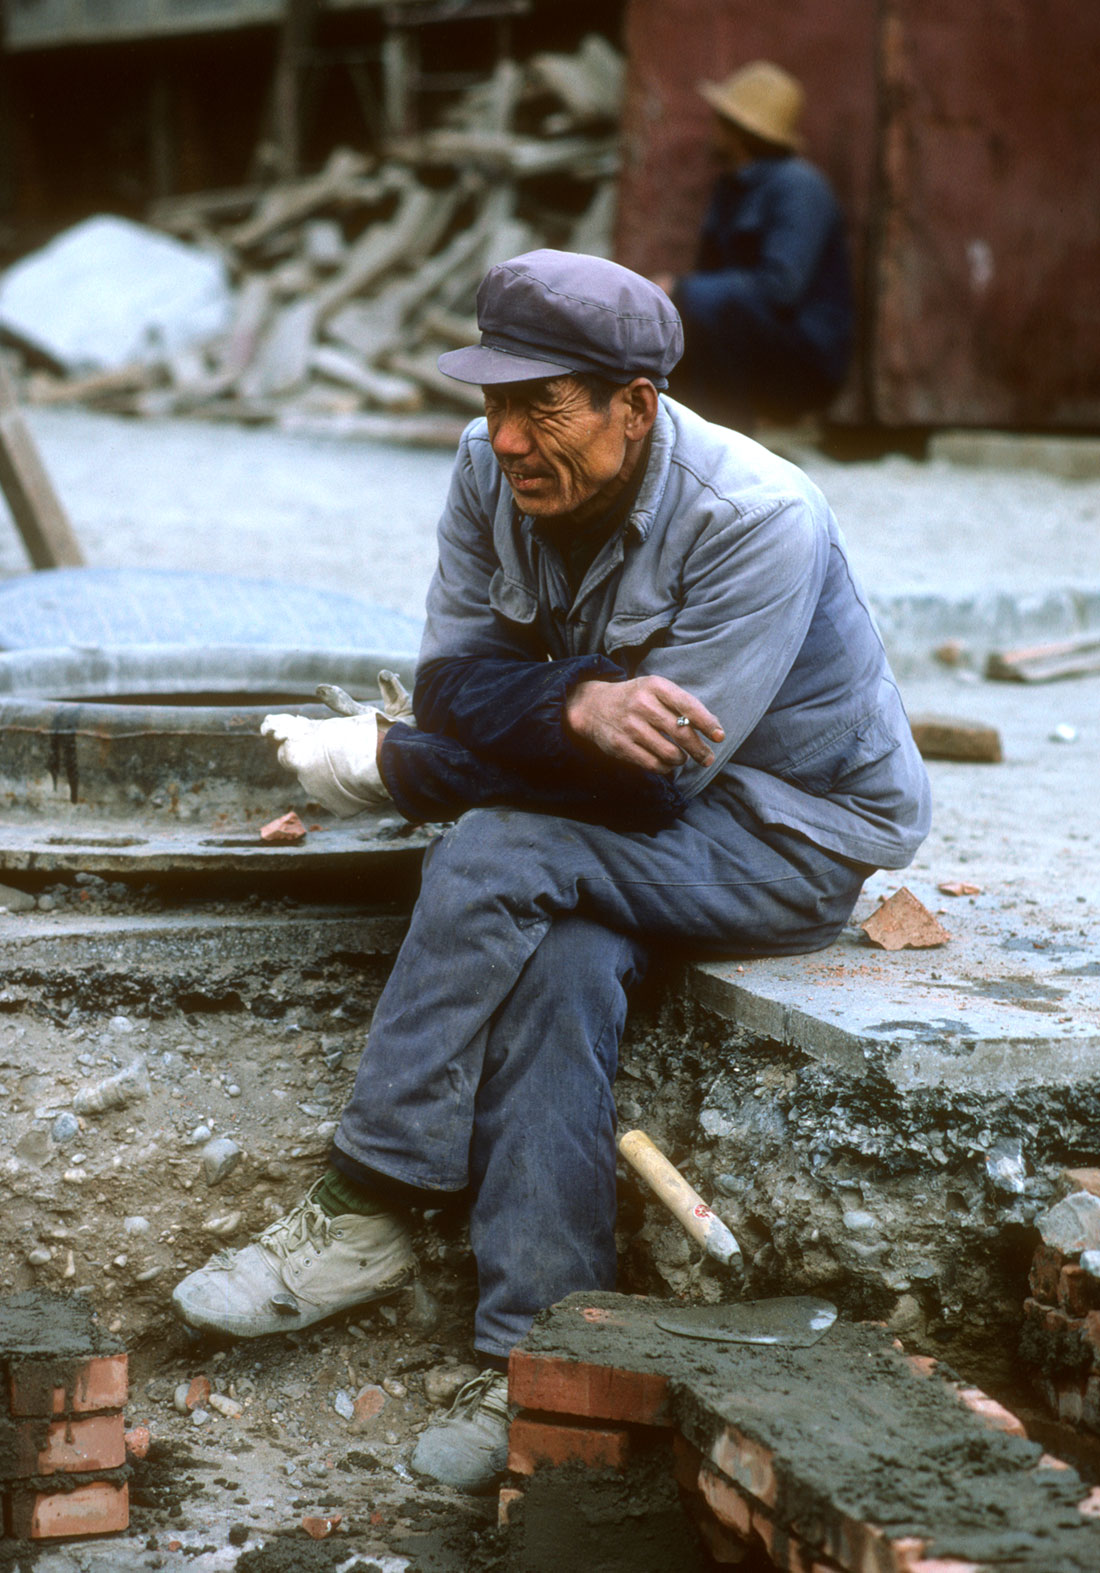 A worker in Beijing, China.